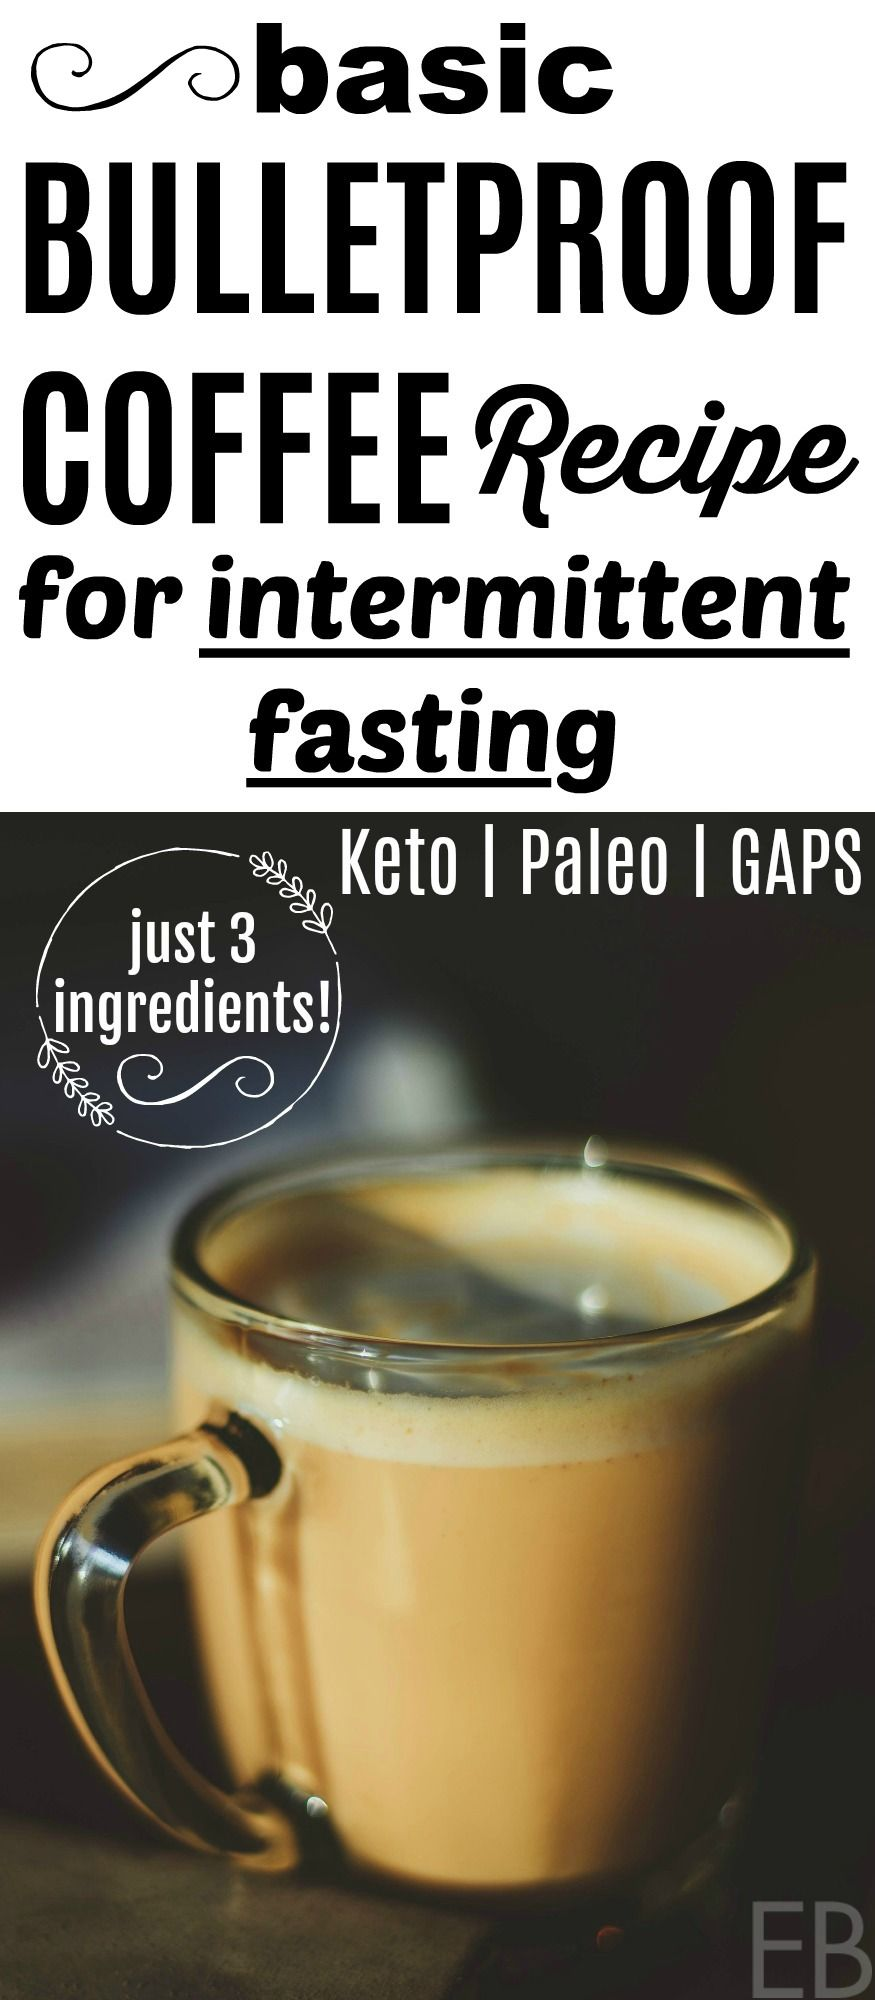 Basic bulletproof coffee for intermittent fasting keto